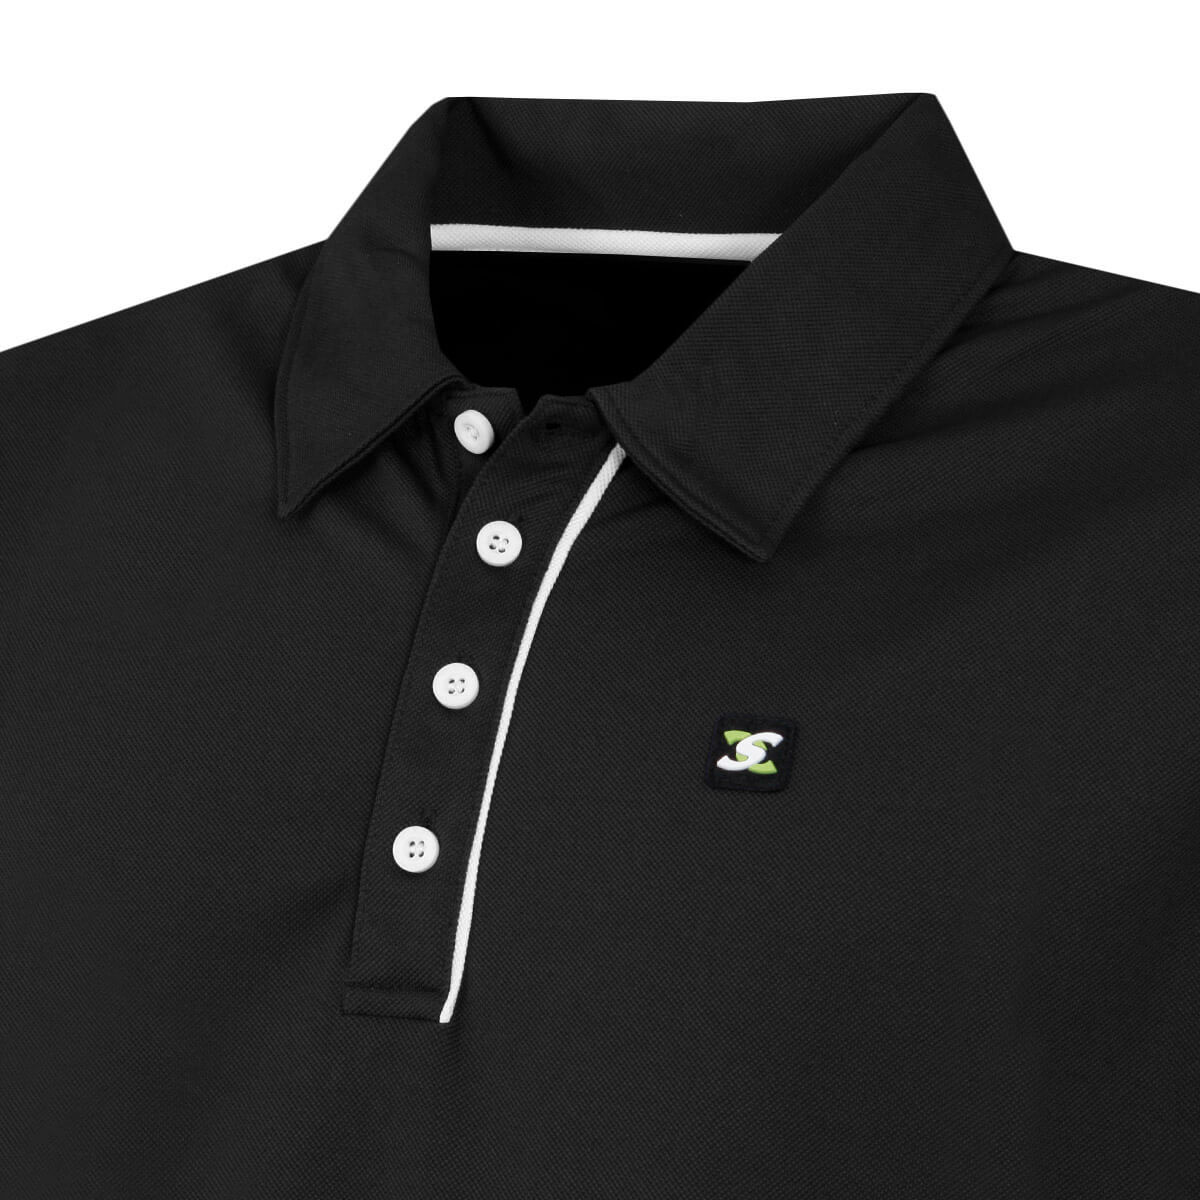 Stuburt-Mens-Urban-Long-Sleeve-Wicking-Breathable-Golf-Polo-Shirt-33-OFF-RRP thumbnail 6